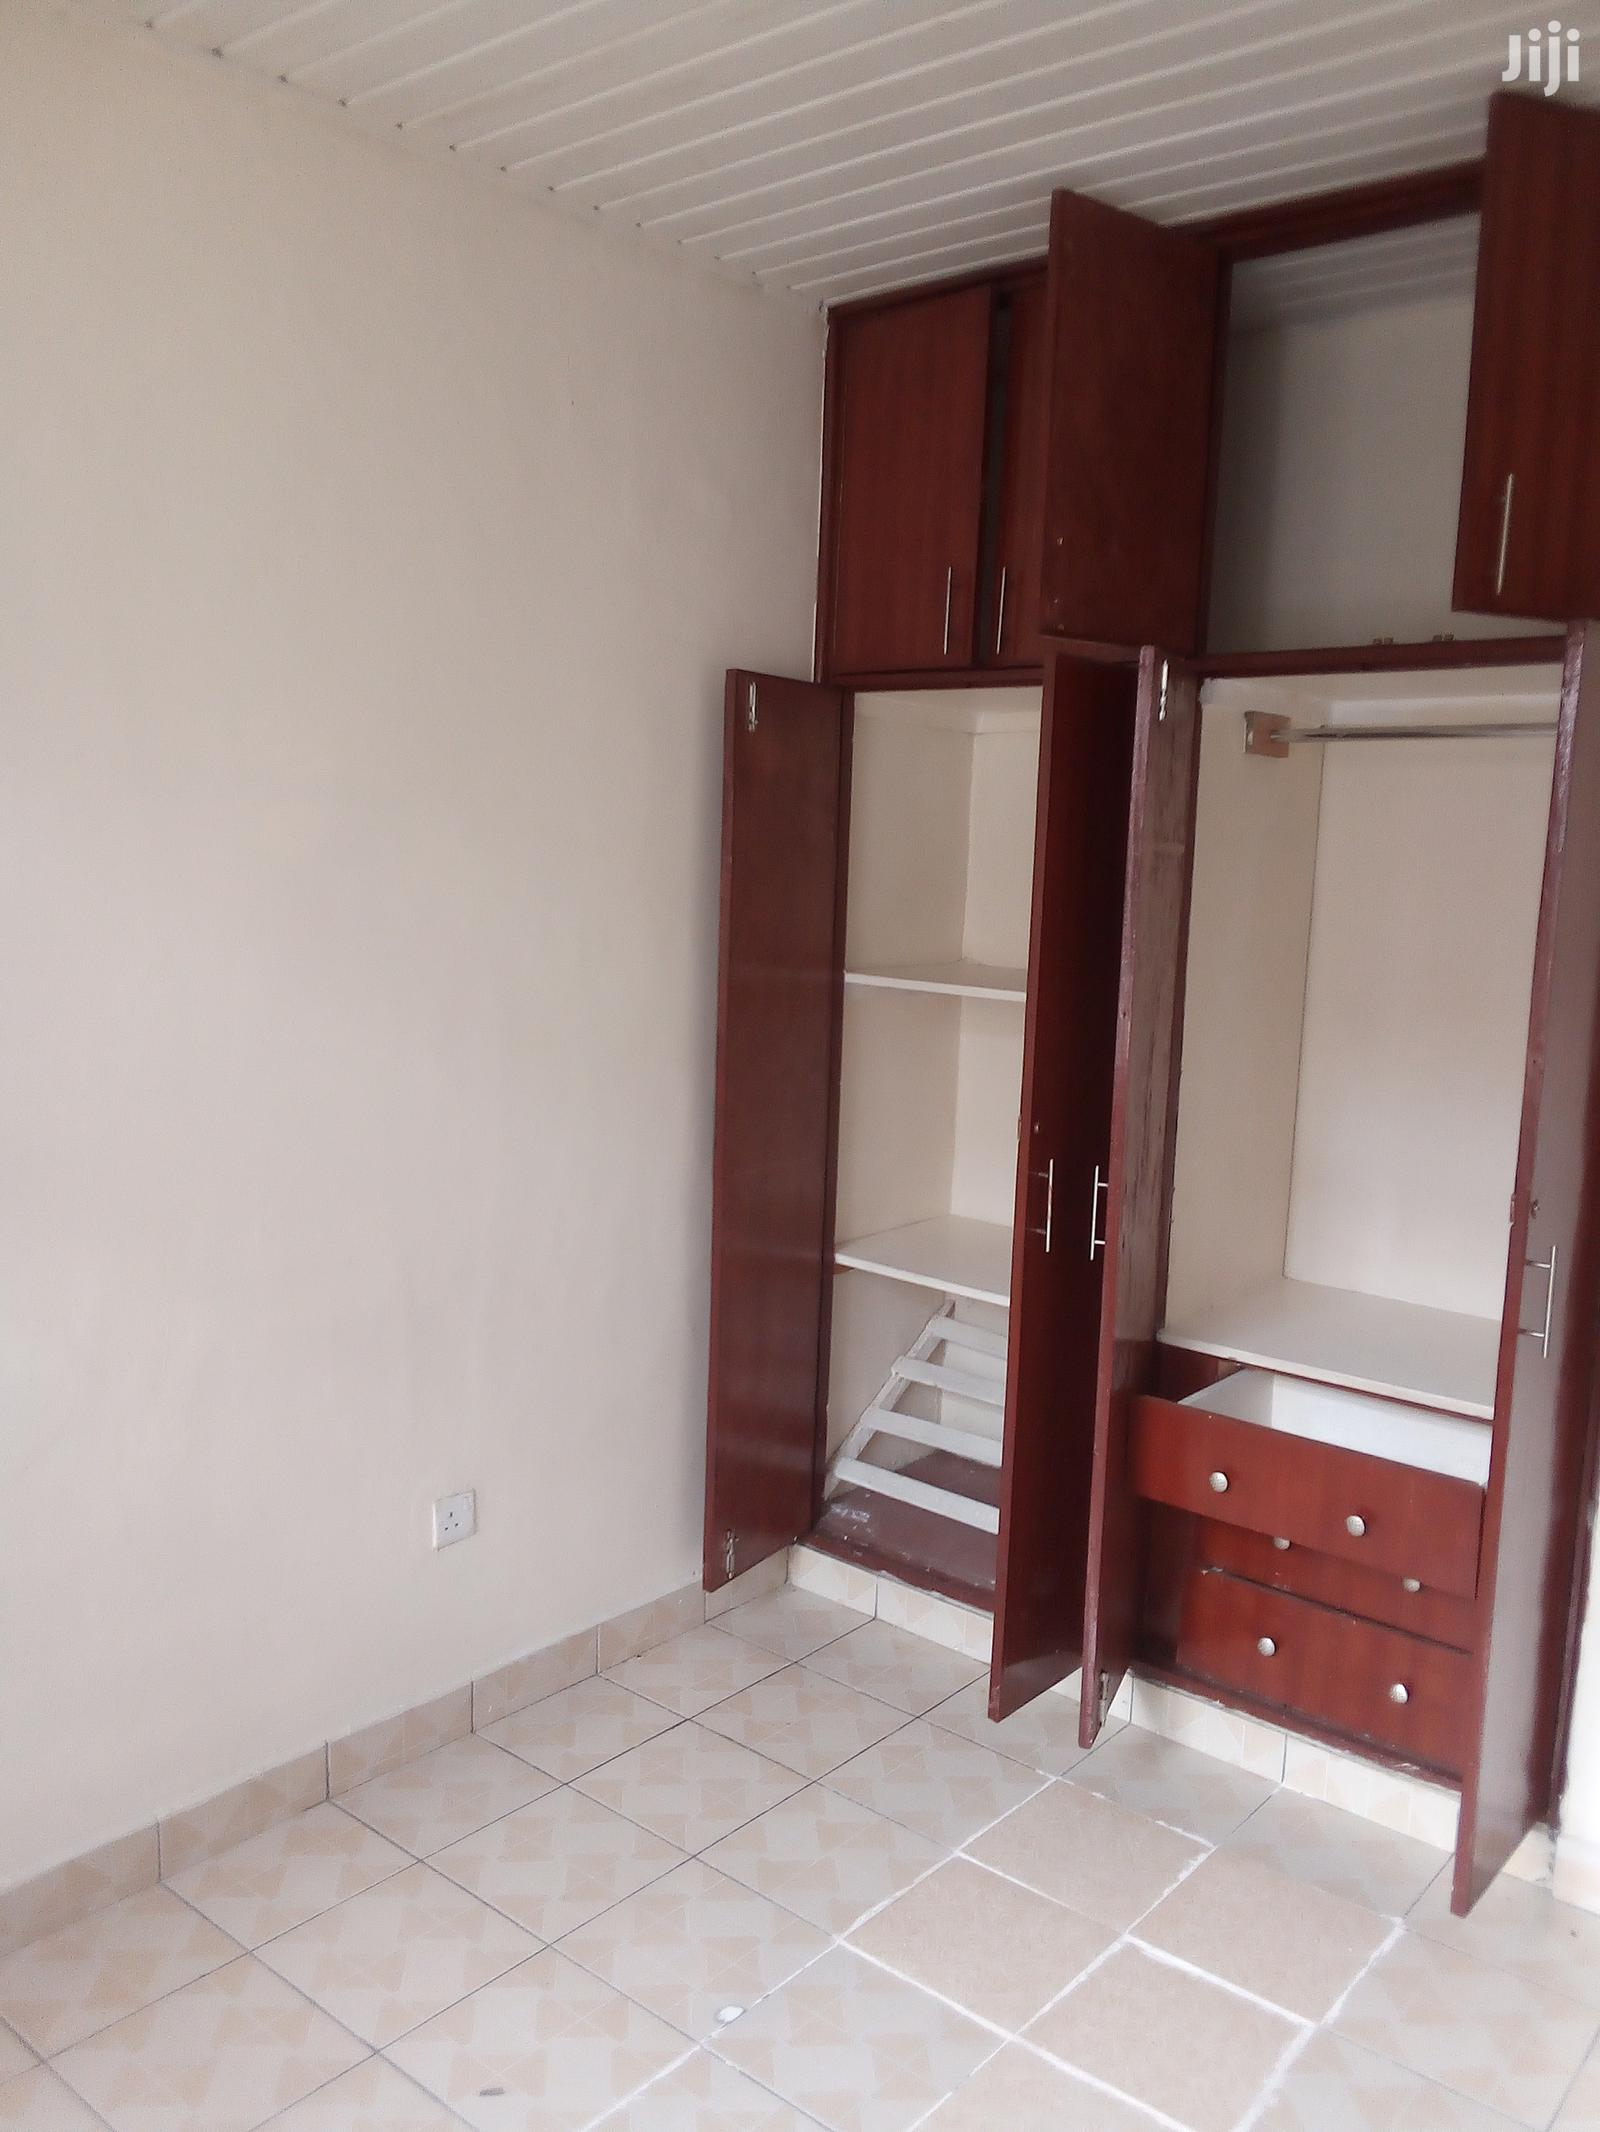 One Bedroom Apartment to Let in Parklands | Houses & Apartments For Rent for sale in Parklands/Highridge, Nairobi, Kenya